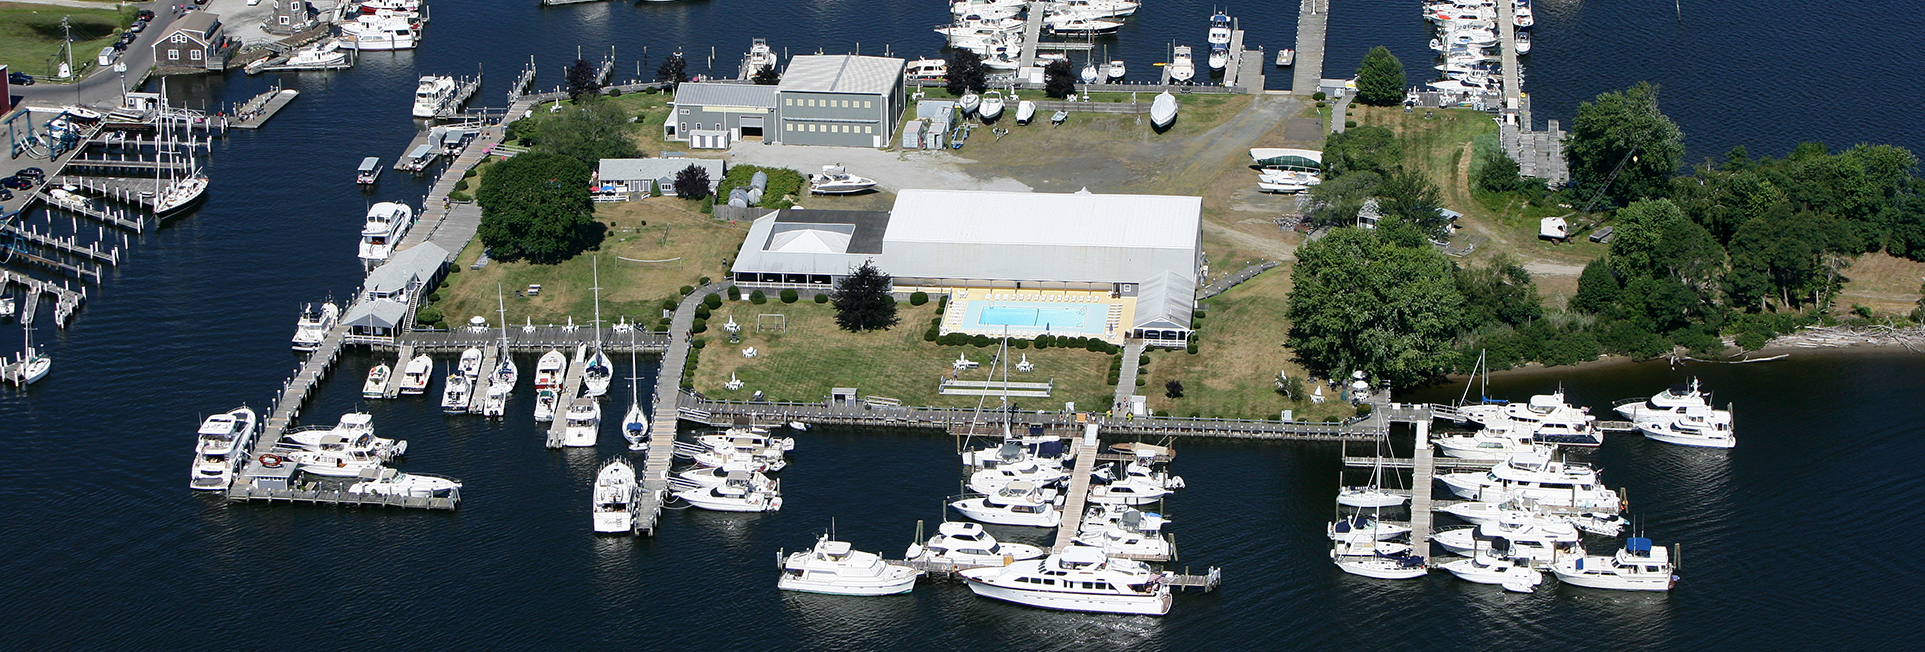 Brewer Essex Island Marina